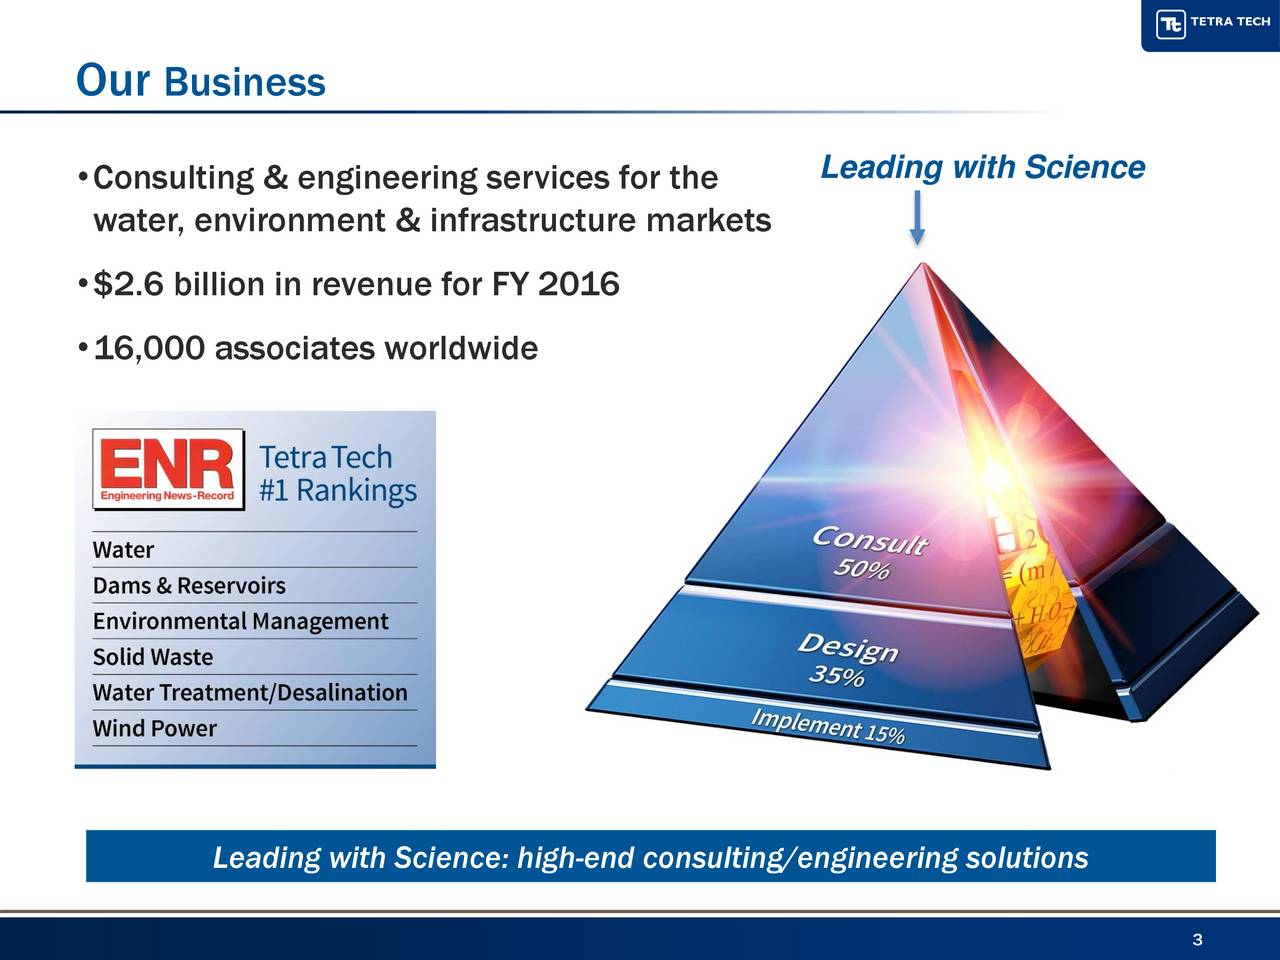 Consulting & engineering services for the Leading with Science water, environment & infrastructure markets $2.6 billion in revenue for FY 2016 16,000 associates worldwide Leading with Science: high-end consulting/engineering solutions